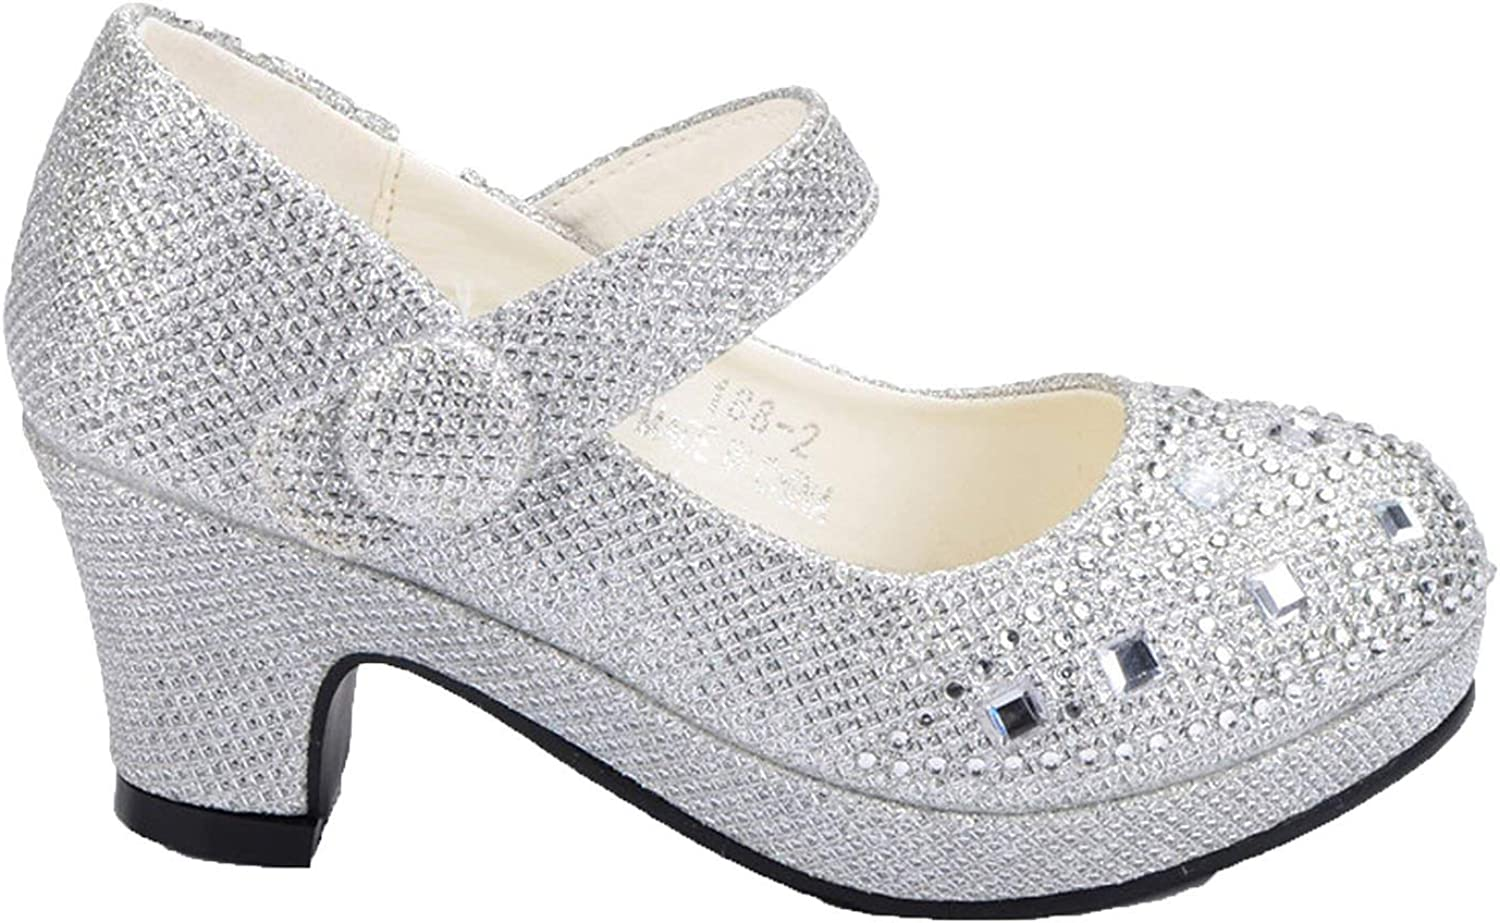 Ytb-home for Girls High Heel Glitter Shiny Rhinestone Party Dress shoes